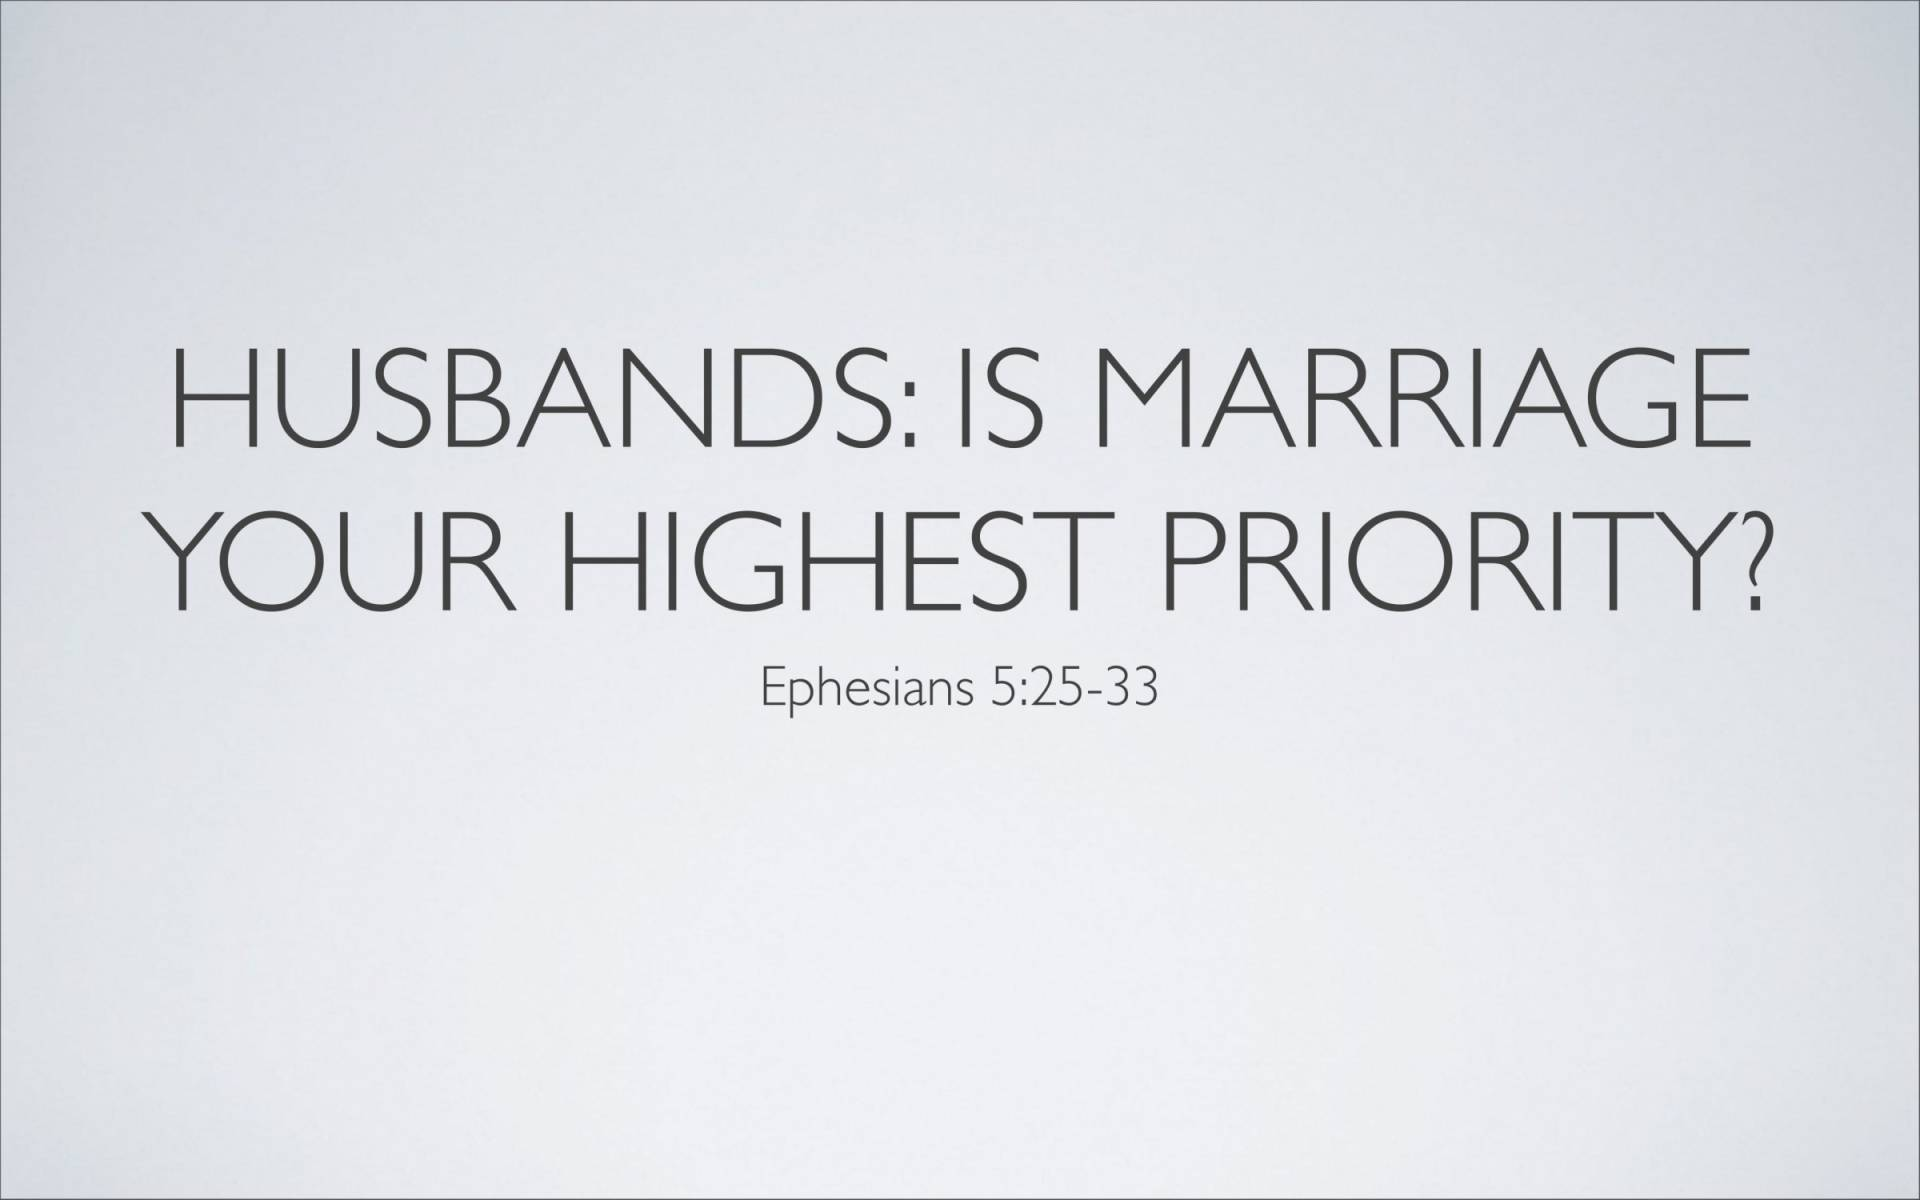 BC&D-36 - Lesson 14 - The Marriage Relationship-20